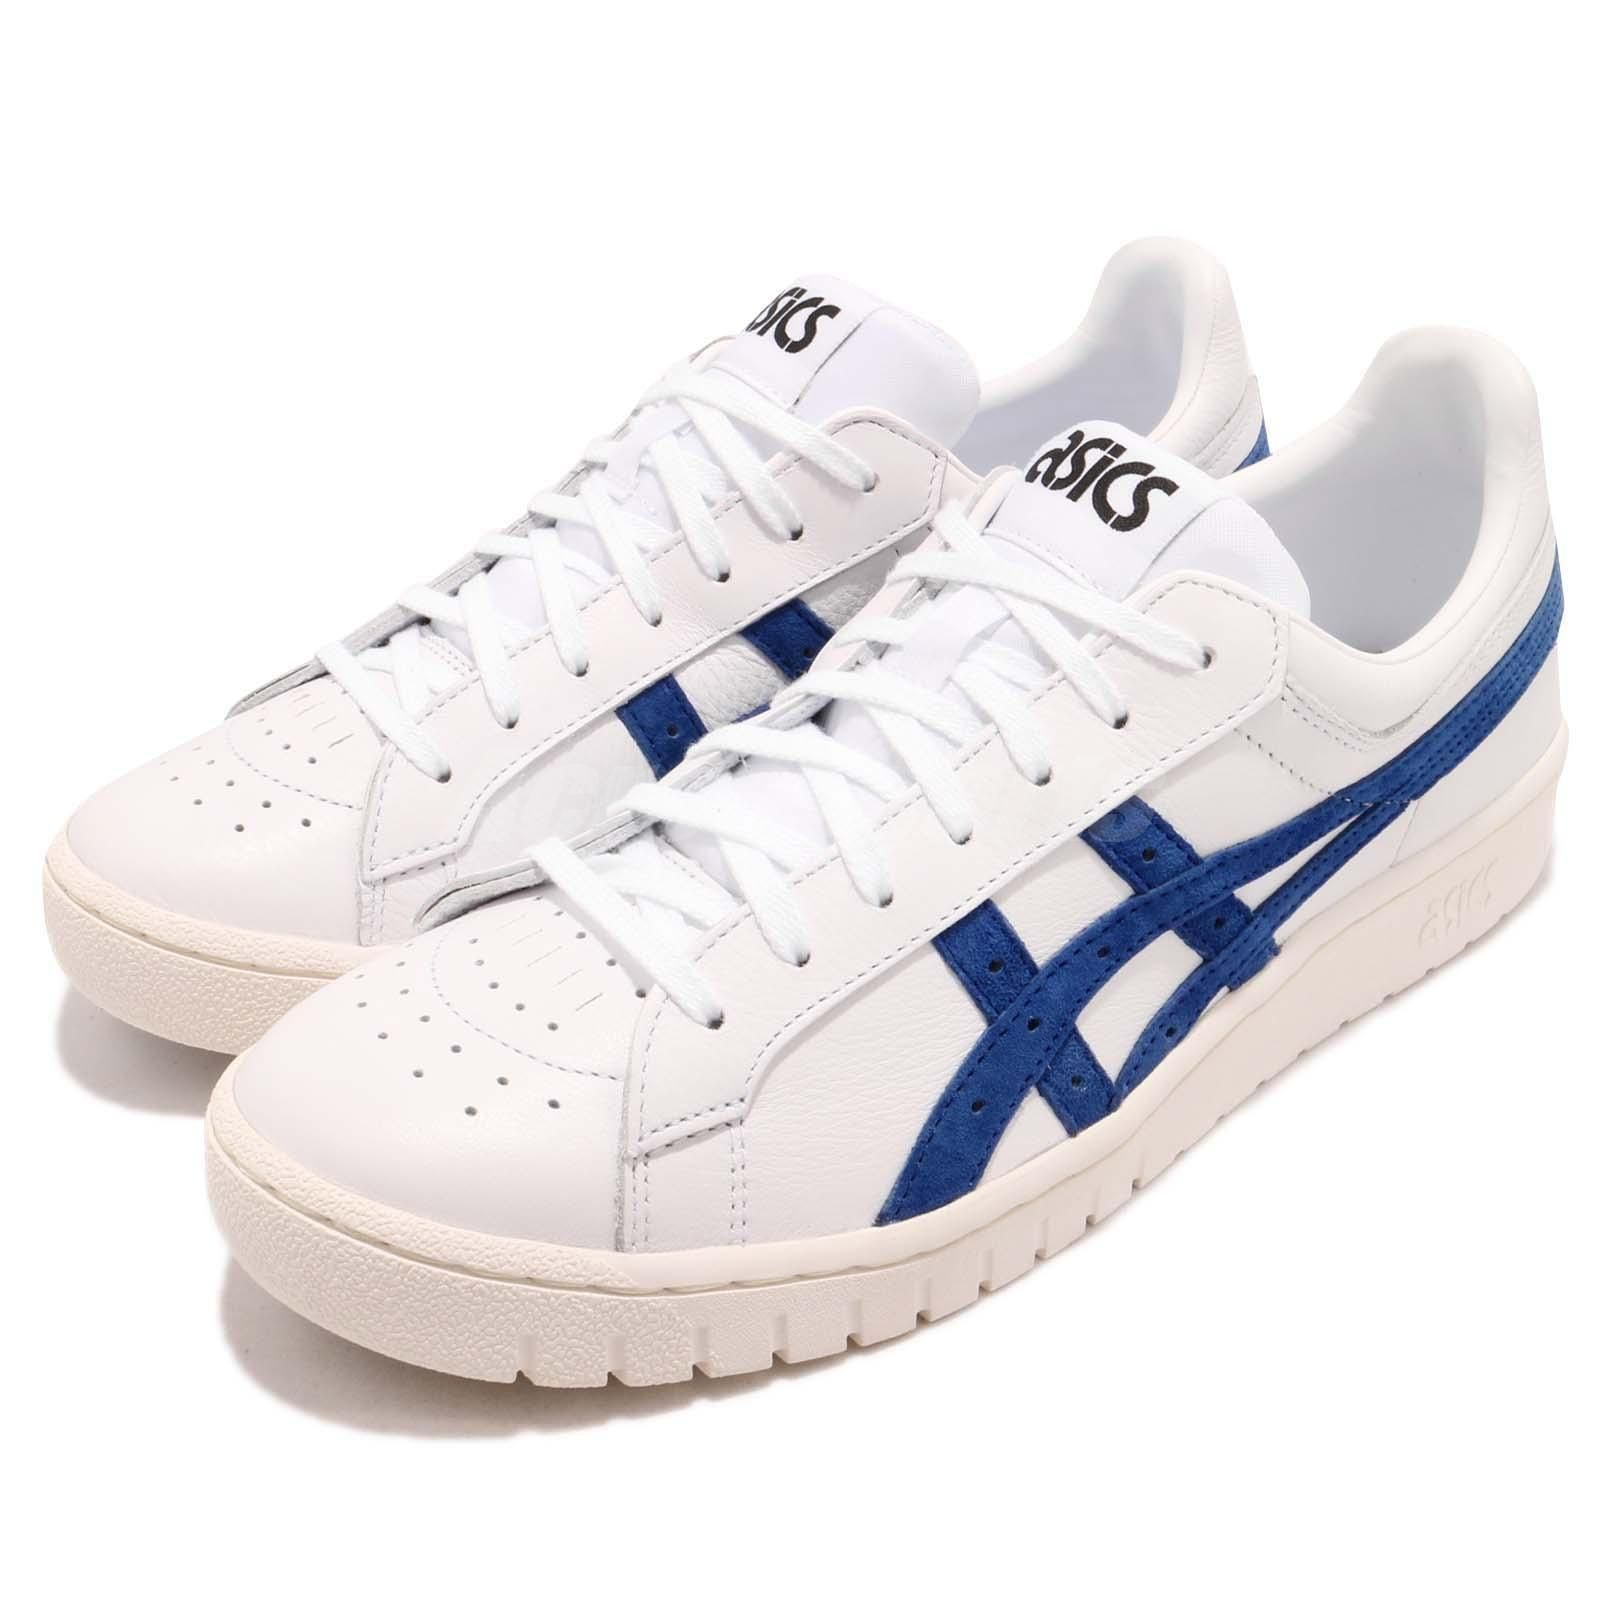 Details about Asics Tiger Gel PTG Low White Men Classic